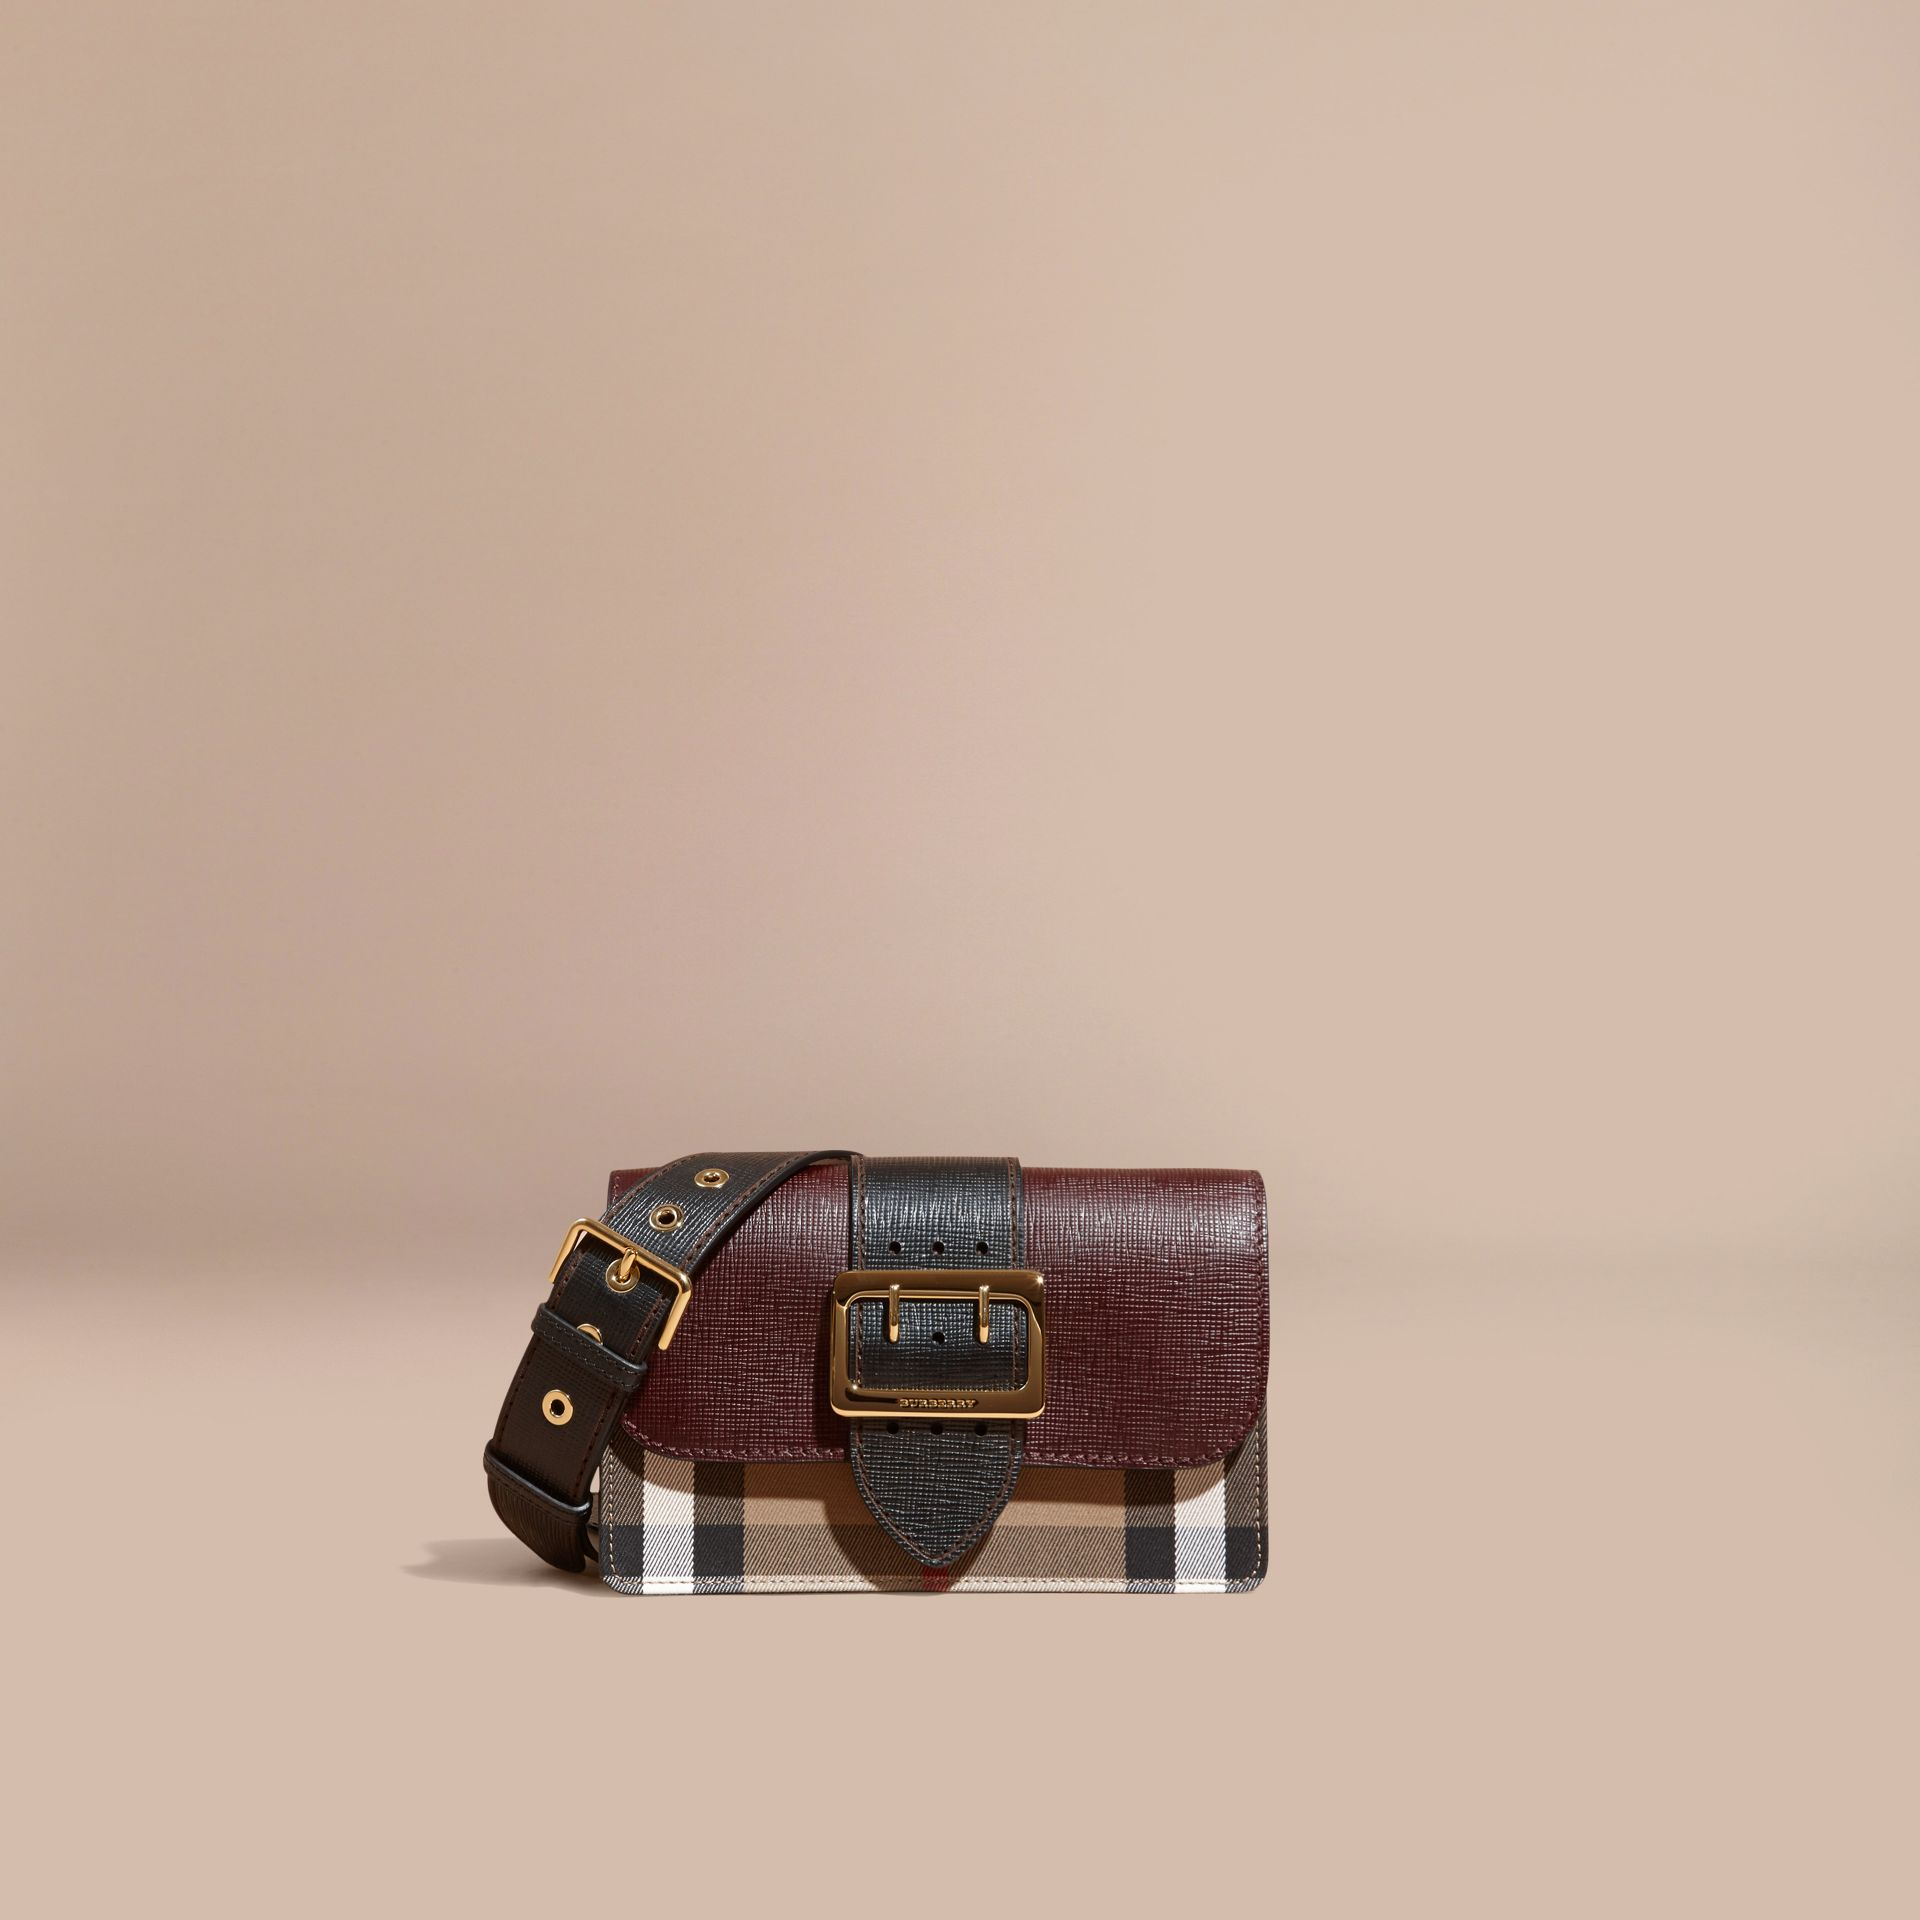 Burgundy/black The Medium Buckle Bag in House Check and Textured Leather Burgundy/black - gallery image 9